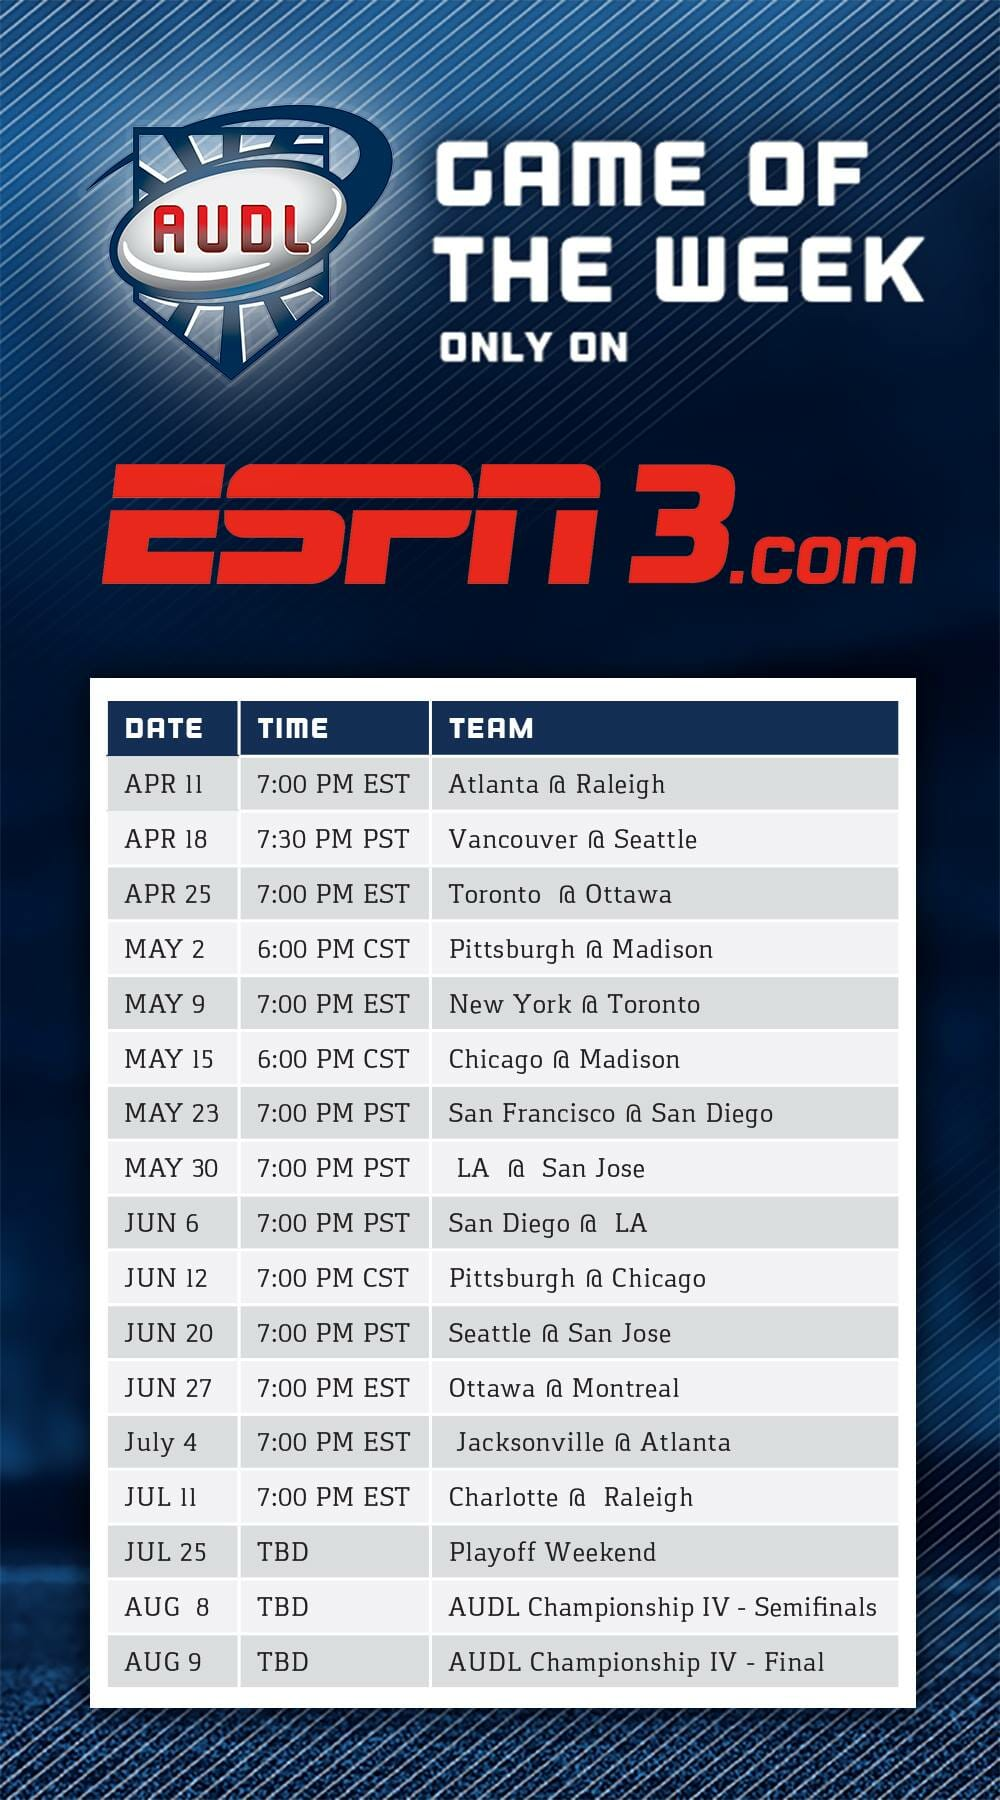 AUDL ESPN3 Game Of The Week